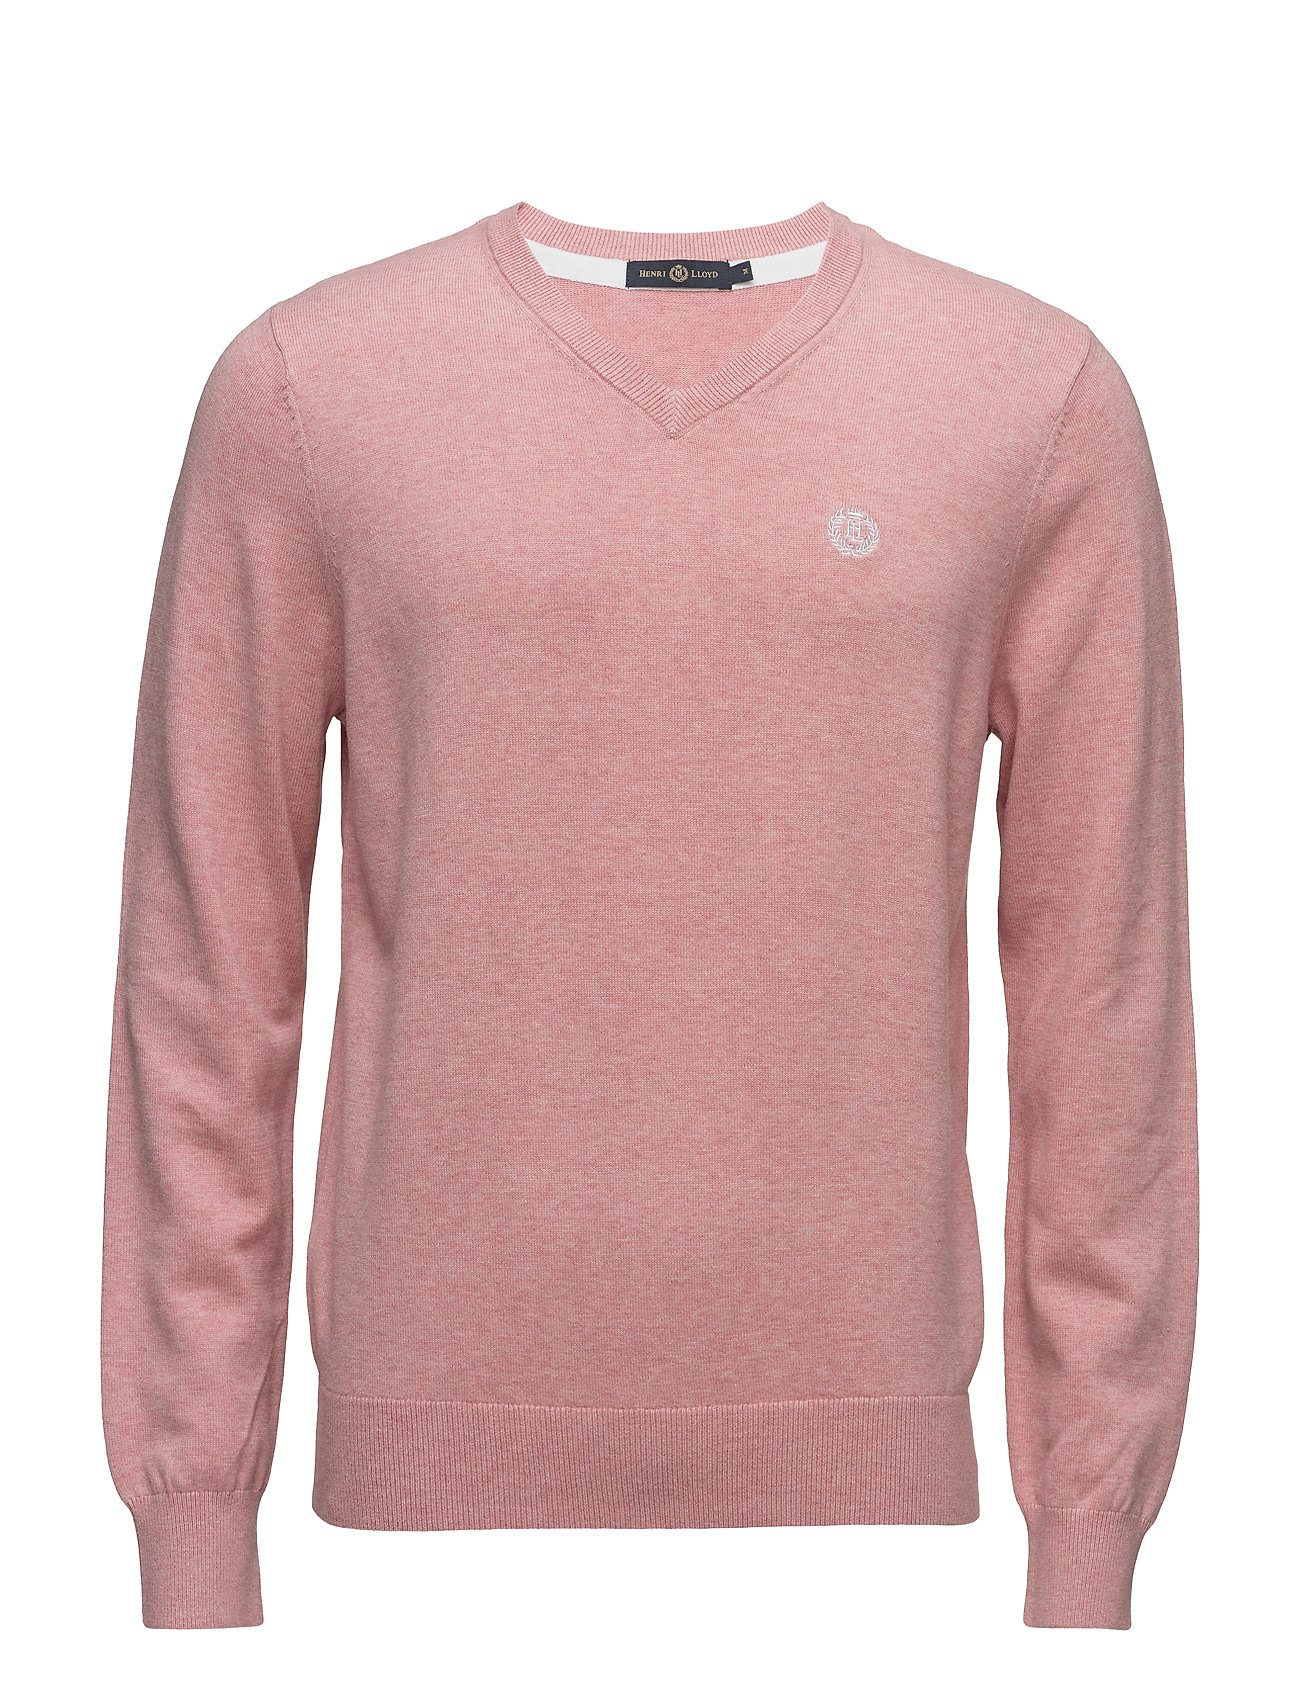 henri lloyd – Moray regular v neck knit på boozt.com dk